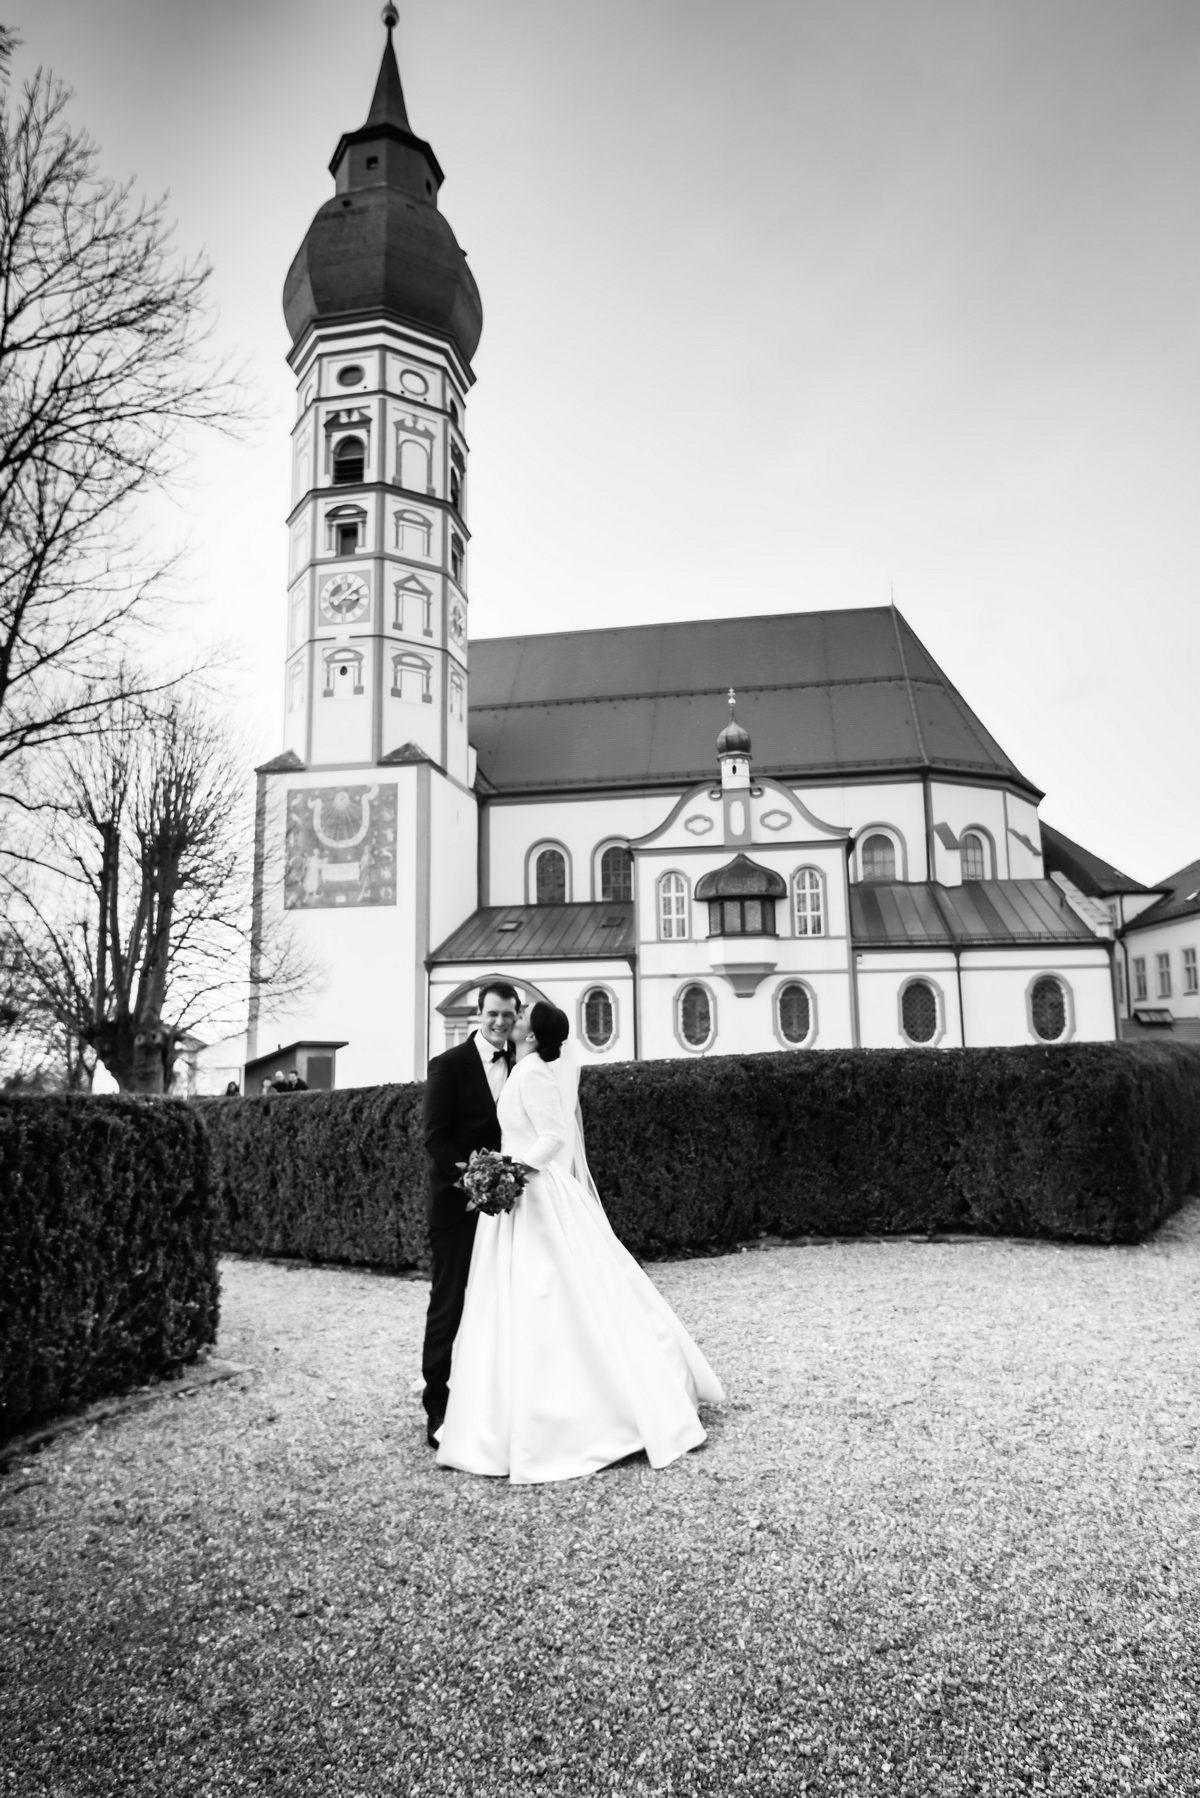 Wedding - Hochzeit - Claudia Sittig Photography - 050